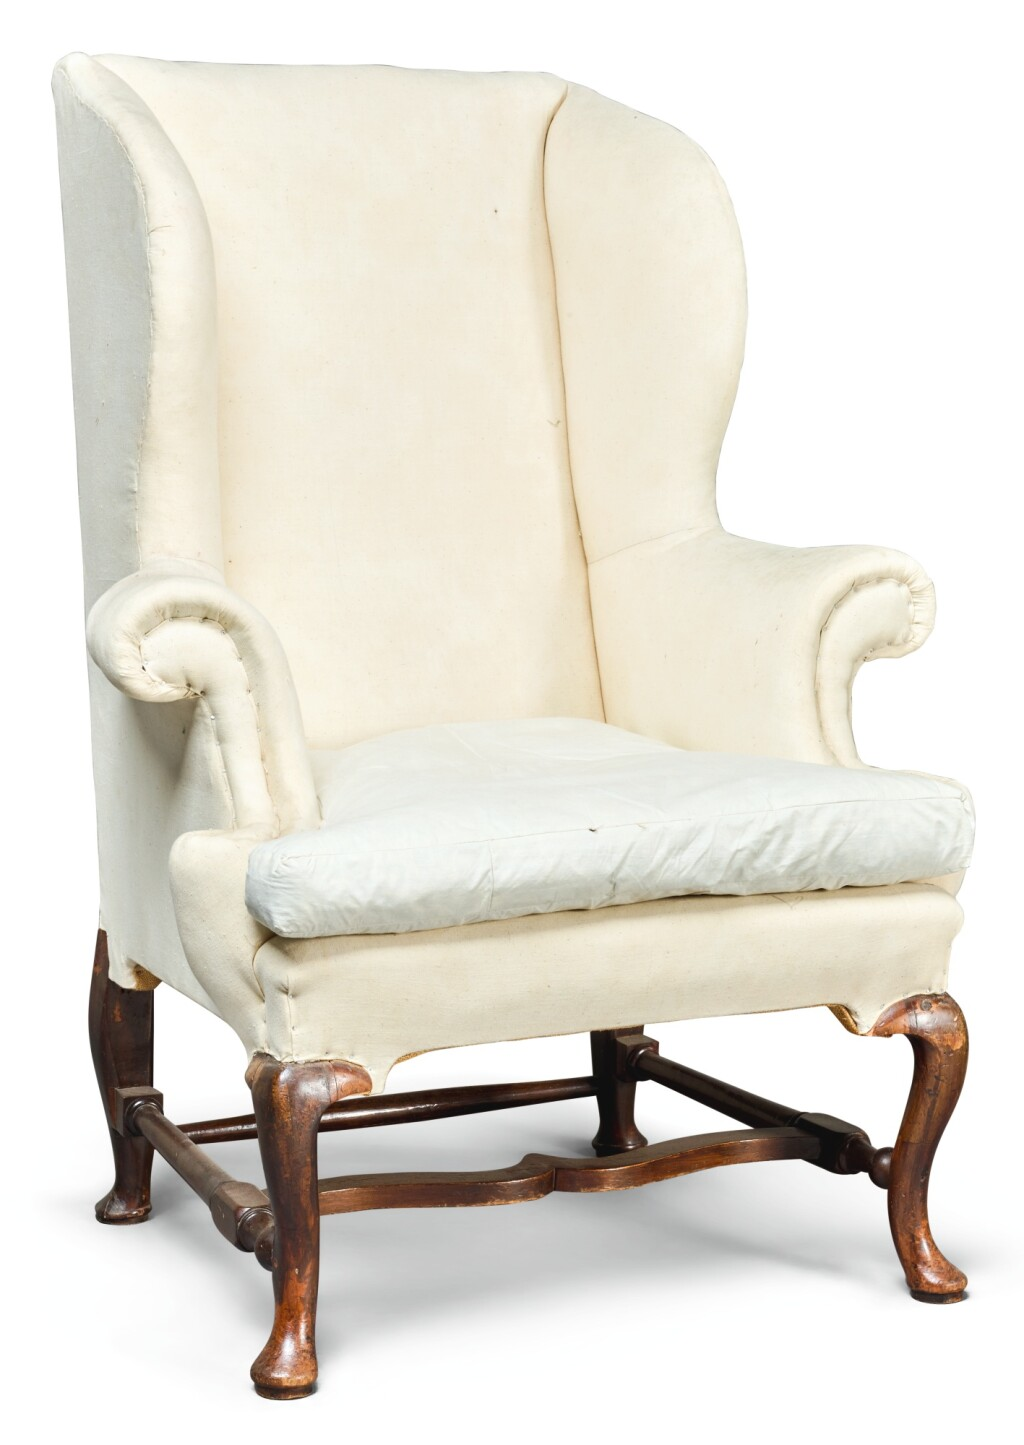 A GEORGE I WALNUT WING-BACK ARMCHAIR